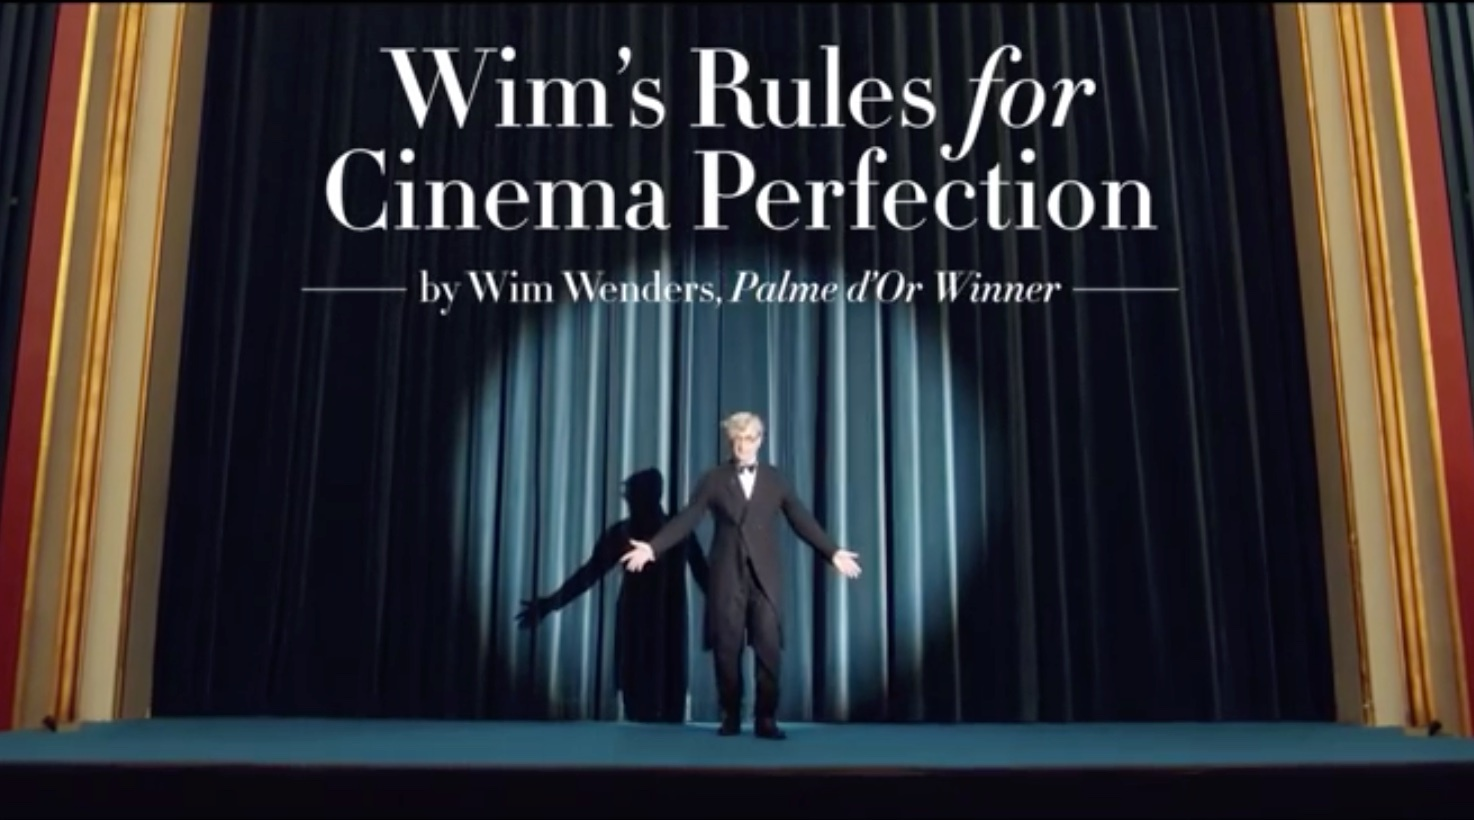 As regras do cinema segundo Wim Wenders – Take 2